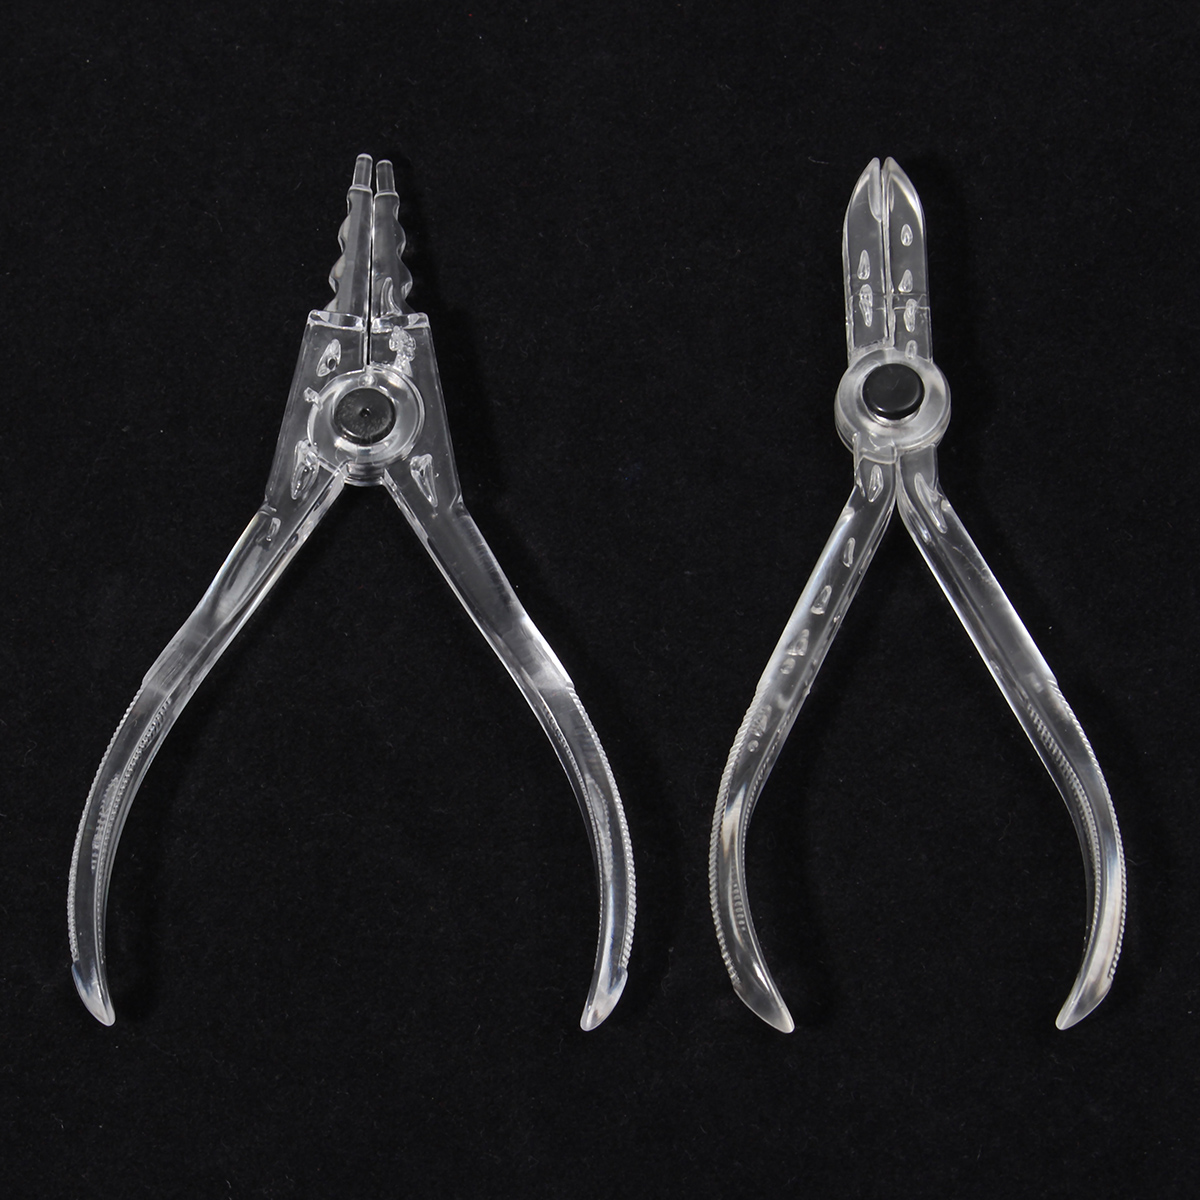 Eyebrow Tattoo Puncture Piercing Equipment Pliers Clam